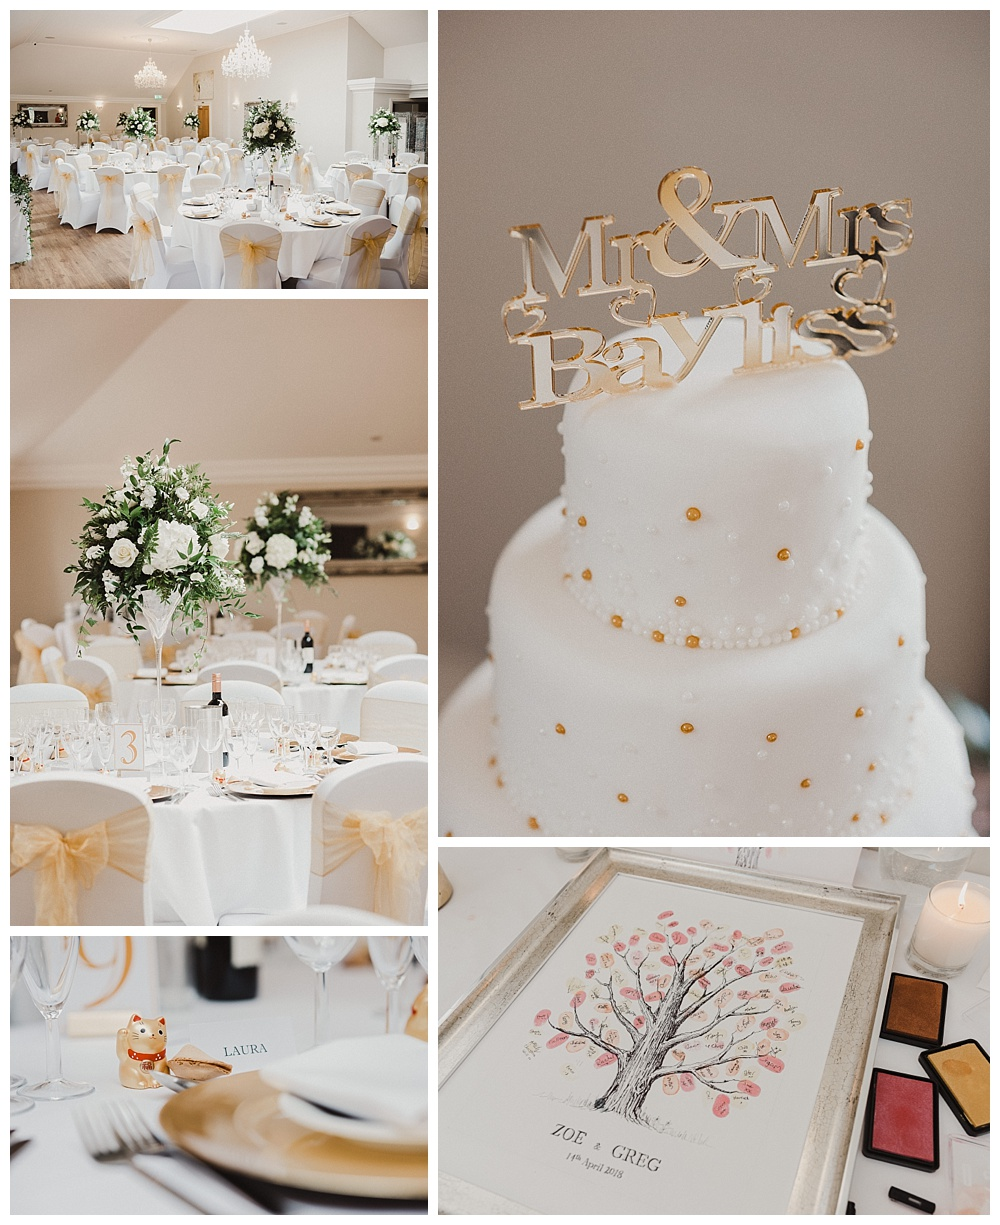 Barton Hall White and Gold Wedding Decor and Cake